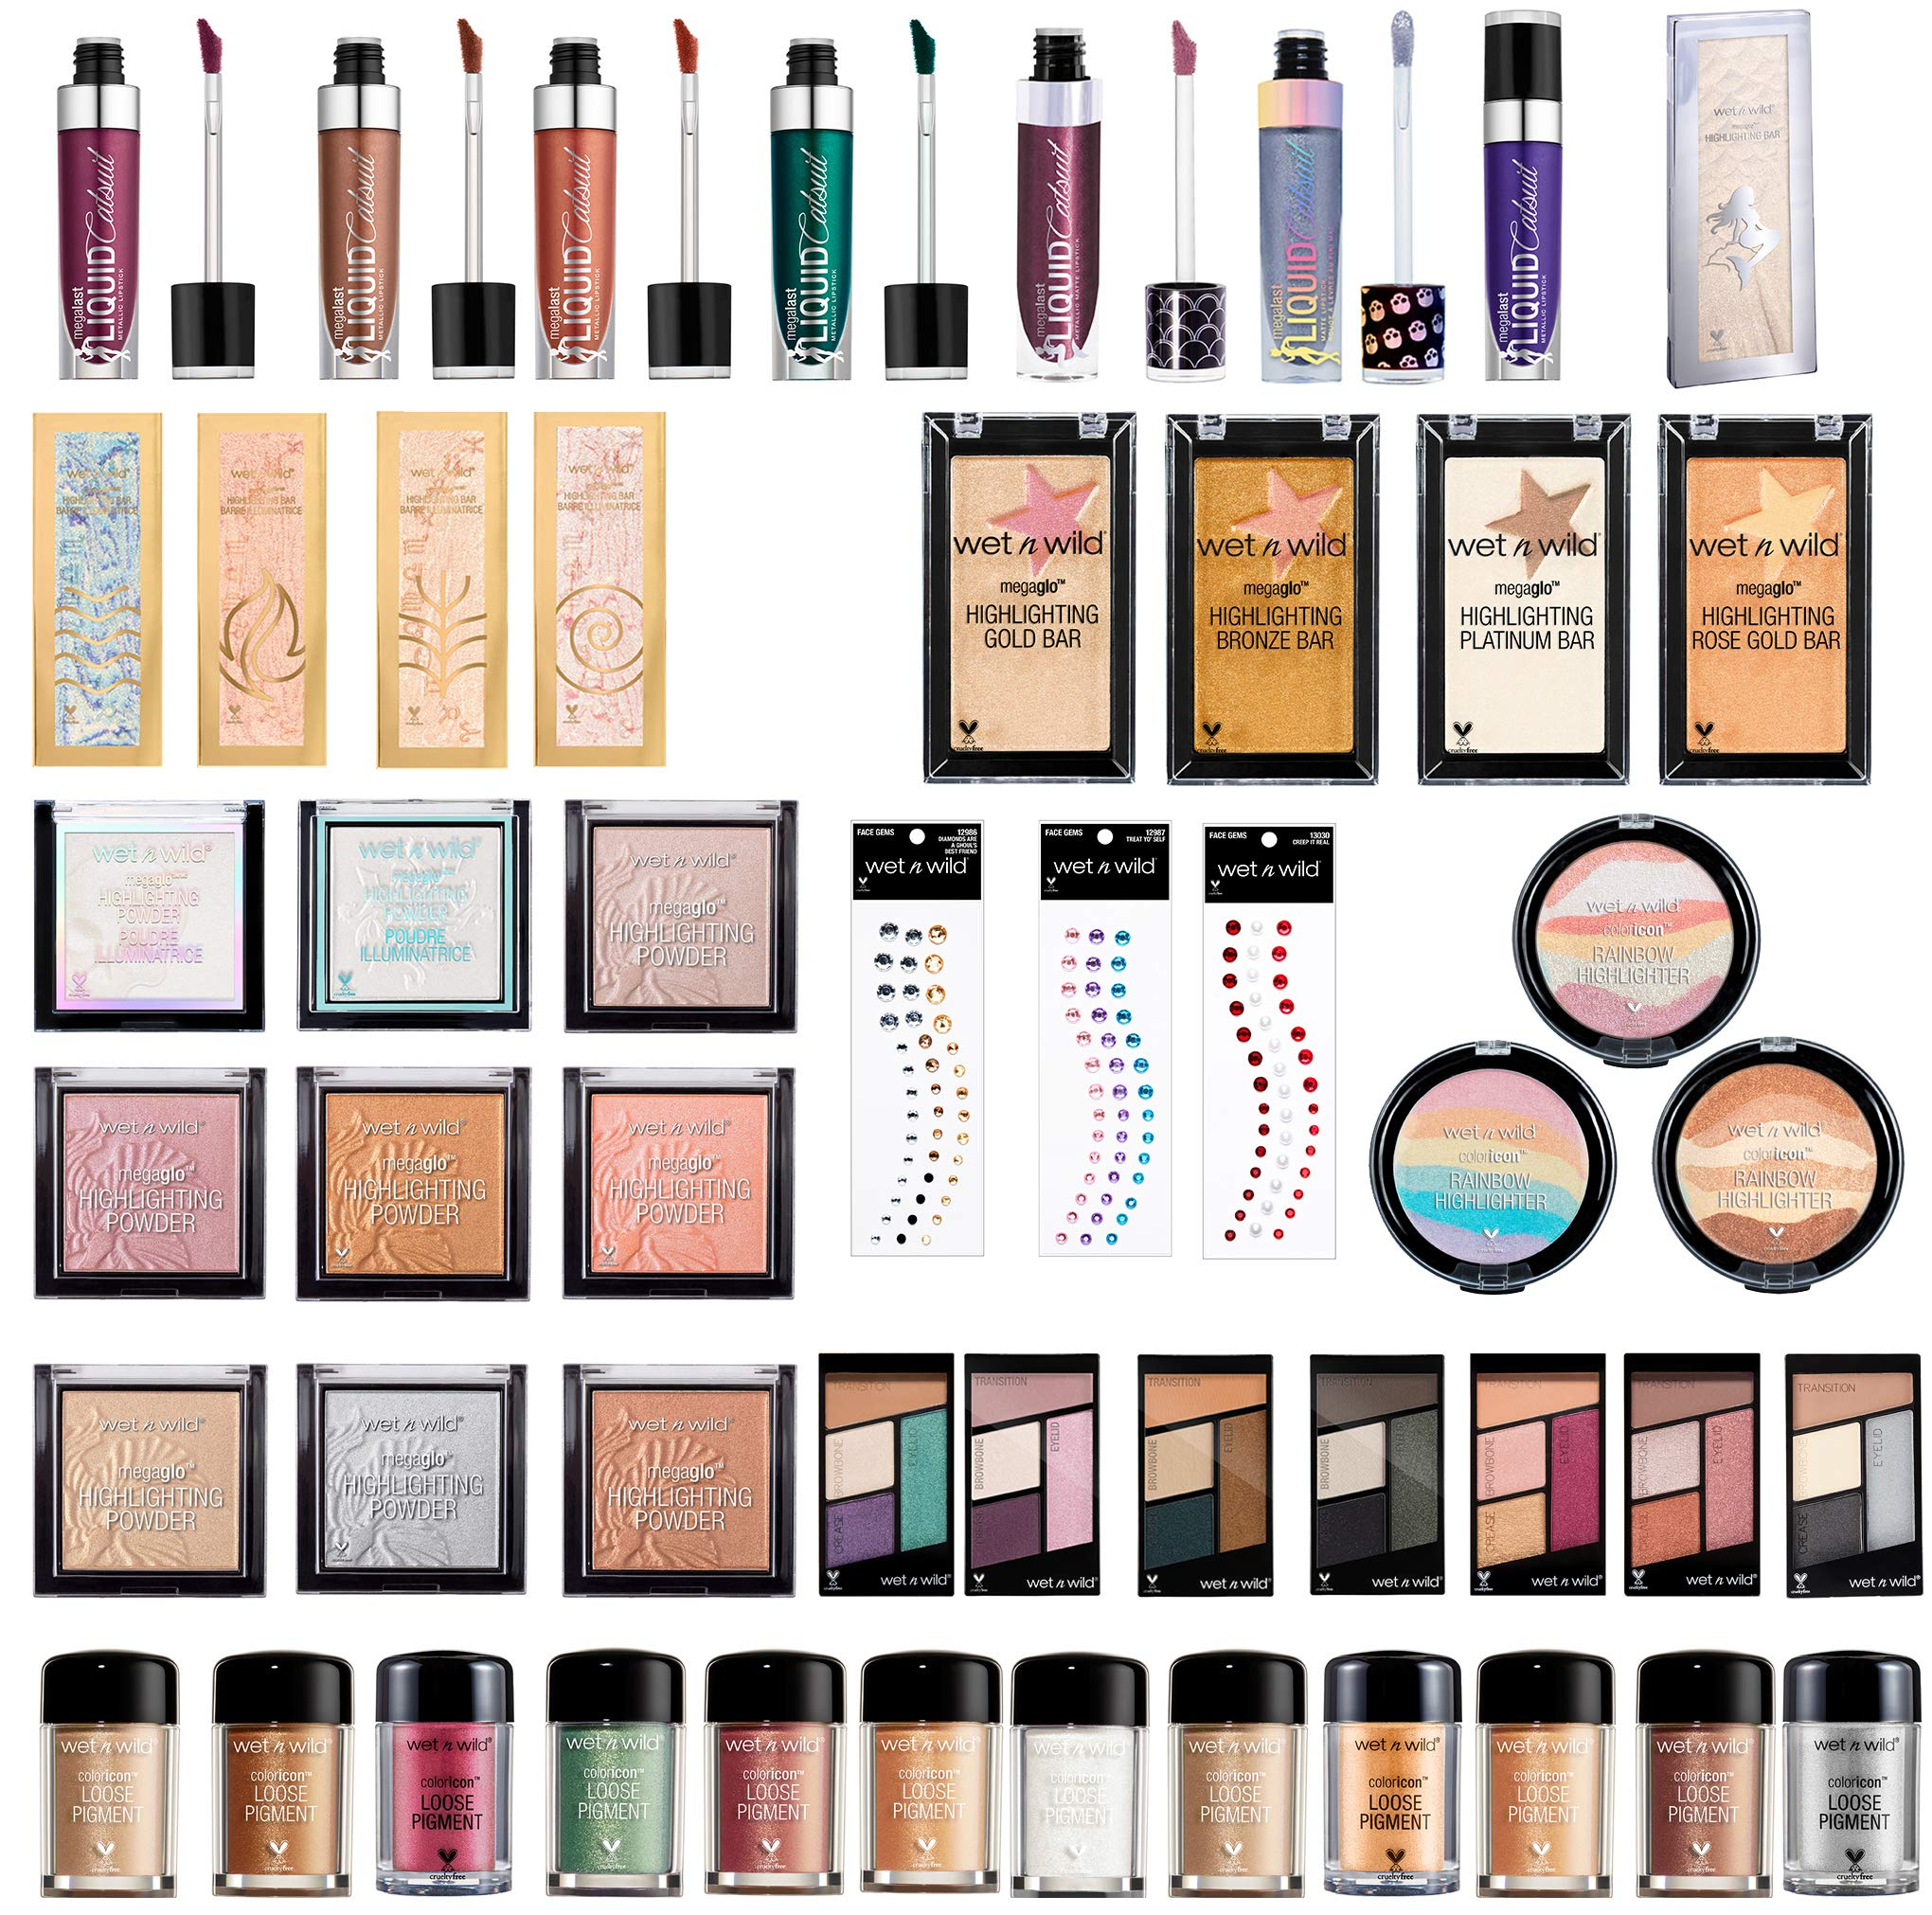 wet n wild Mystery Bundle (Blast from the Past Limited Edition Collection) Random Selection No Duplicates